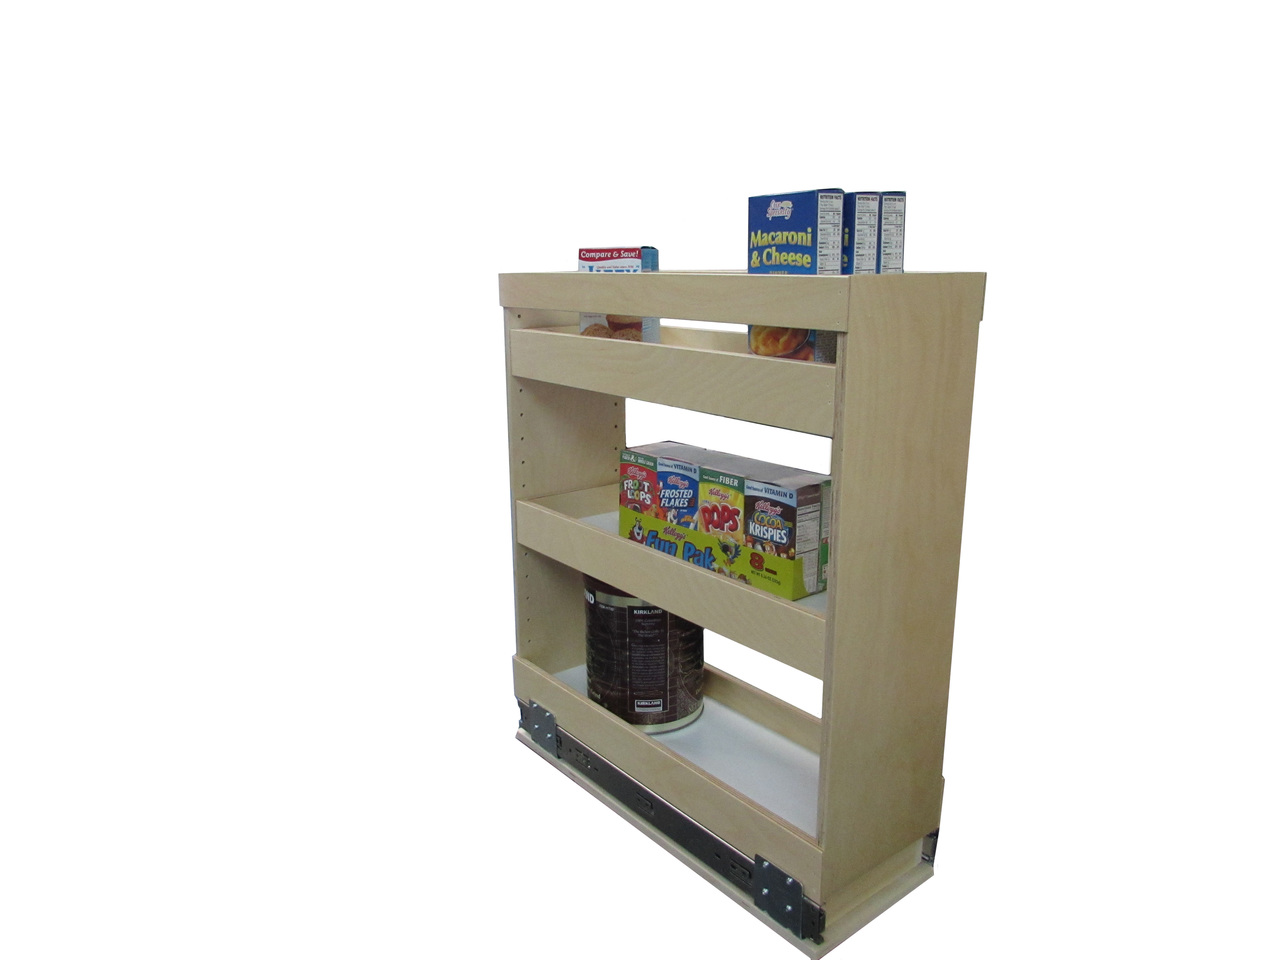 Slide Out e Rack | Made to fit e rack shelving on 28 inch kitchen cabinet, 6 inch curtains, 7 inch kitchen cabinet, 8 inch kitchen cabinet, 6 inch furniture, 22 inch kitchen cabinet, 16 inch kitchen cabinet, 34 inch kitchen cabinet, 6 inch bookcase, 72 inch kitchen cabinet, 46 inch kitchen cabinet, 6 base cabinet, 10 inch kitchen cabinet, 6 inch glass, 6 inch heater, 3 inch kitchen cabinet, 6 inch wooden door, 84 inch kitchen base cabinet, 6 inch fence, 6 inch wall cabinet,